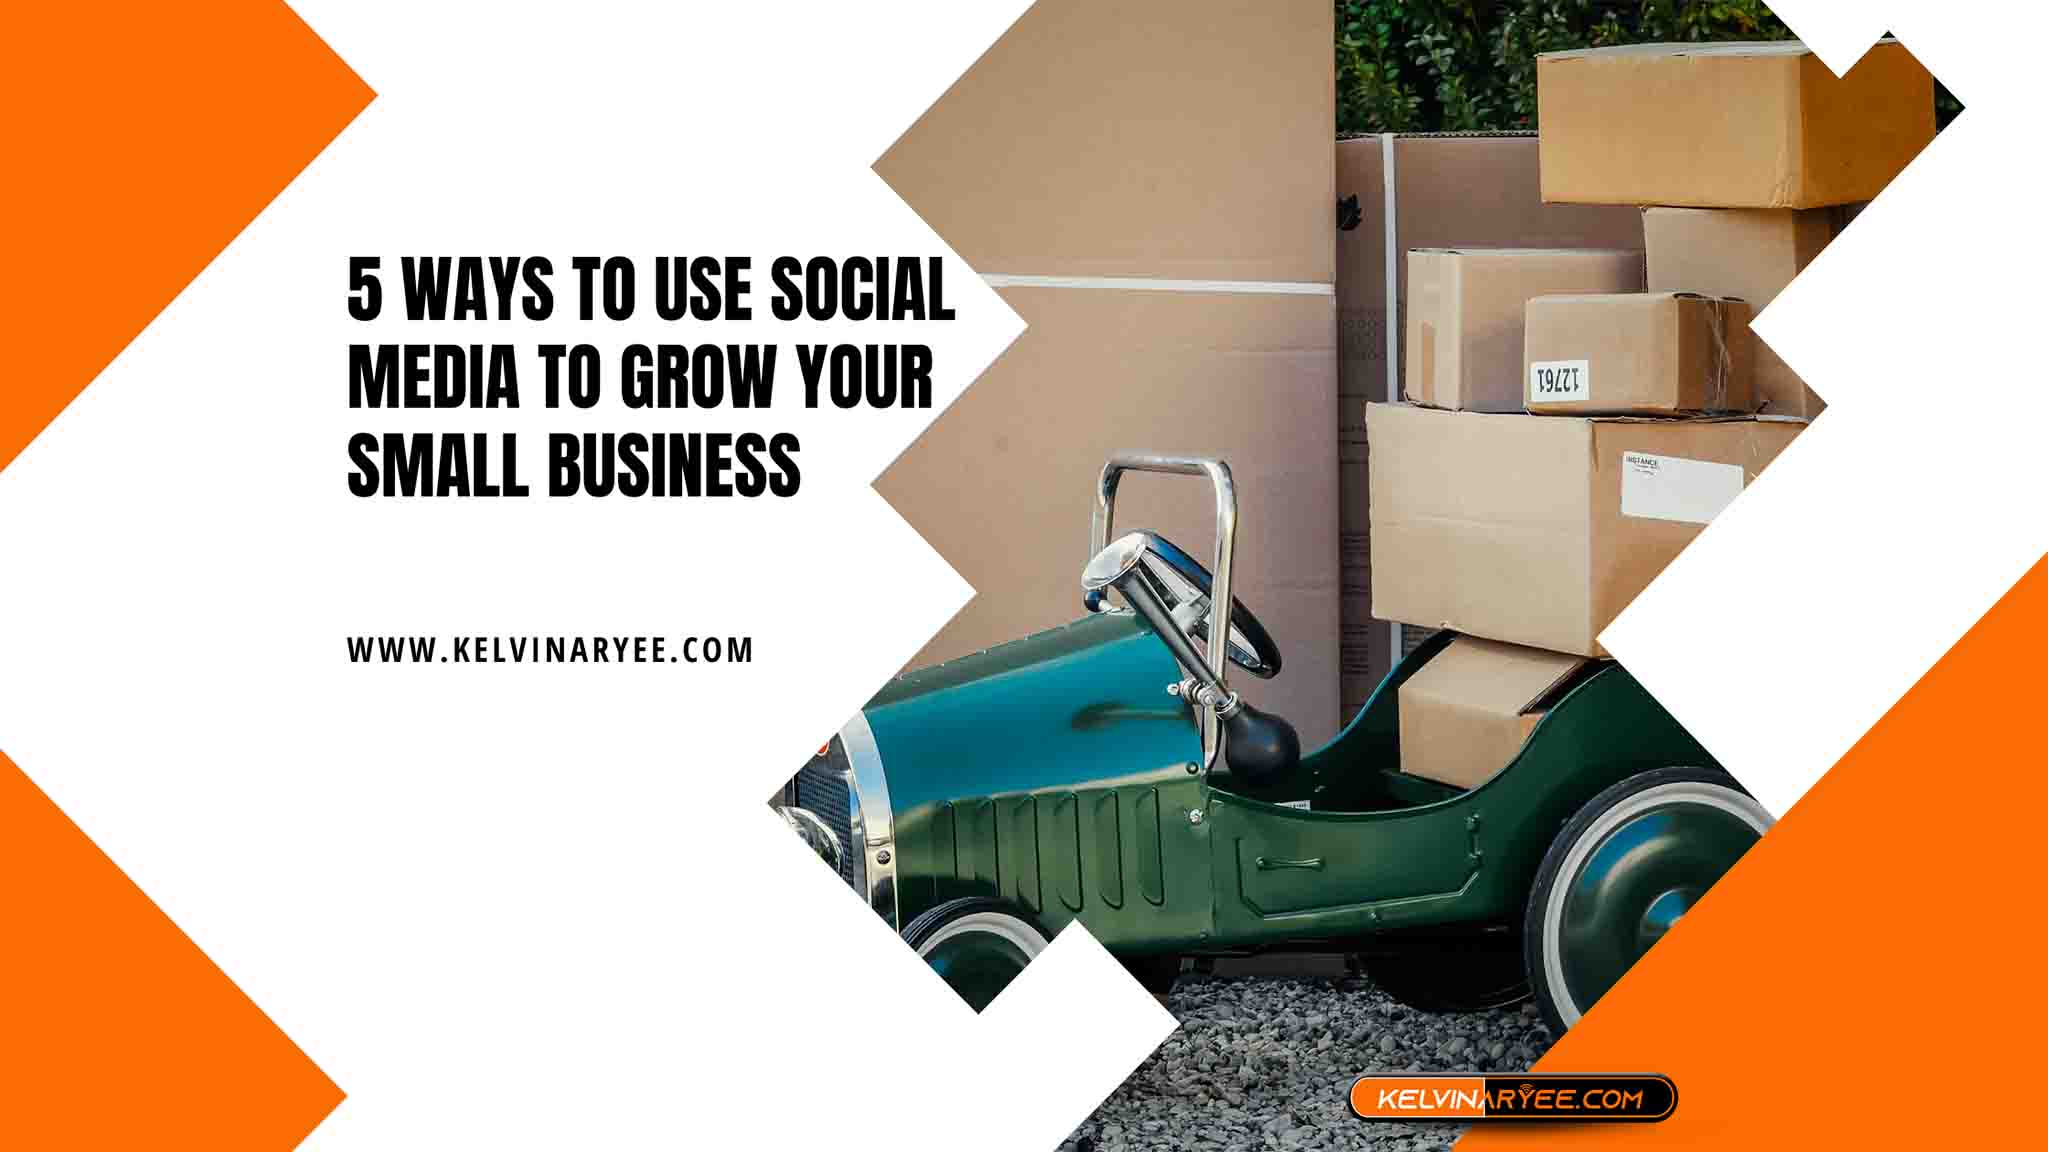 5 Ways to Use Social Media to Grow Your Small Business